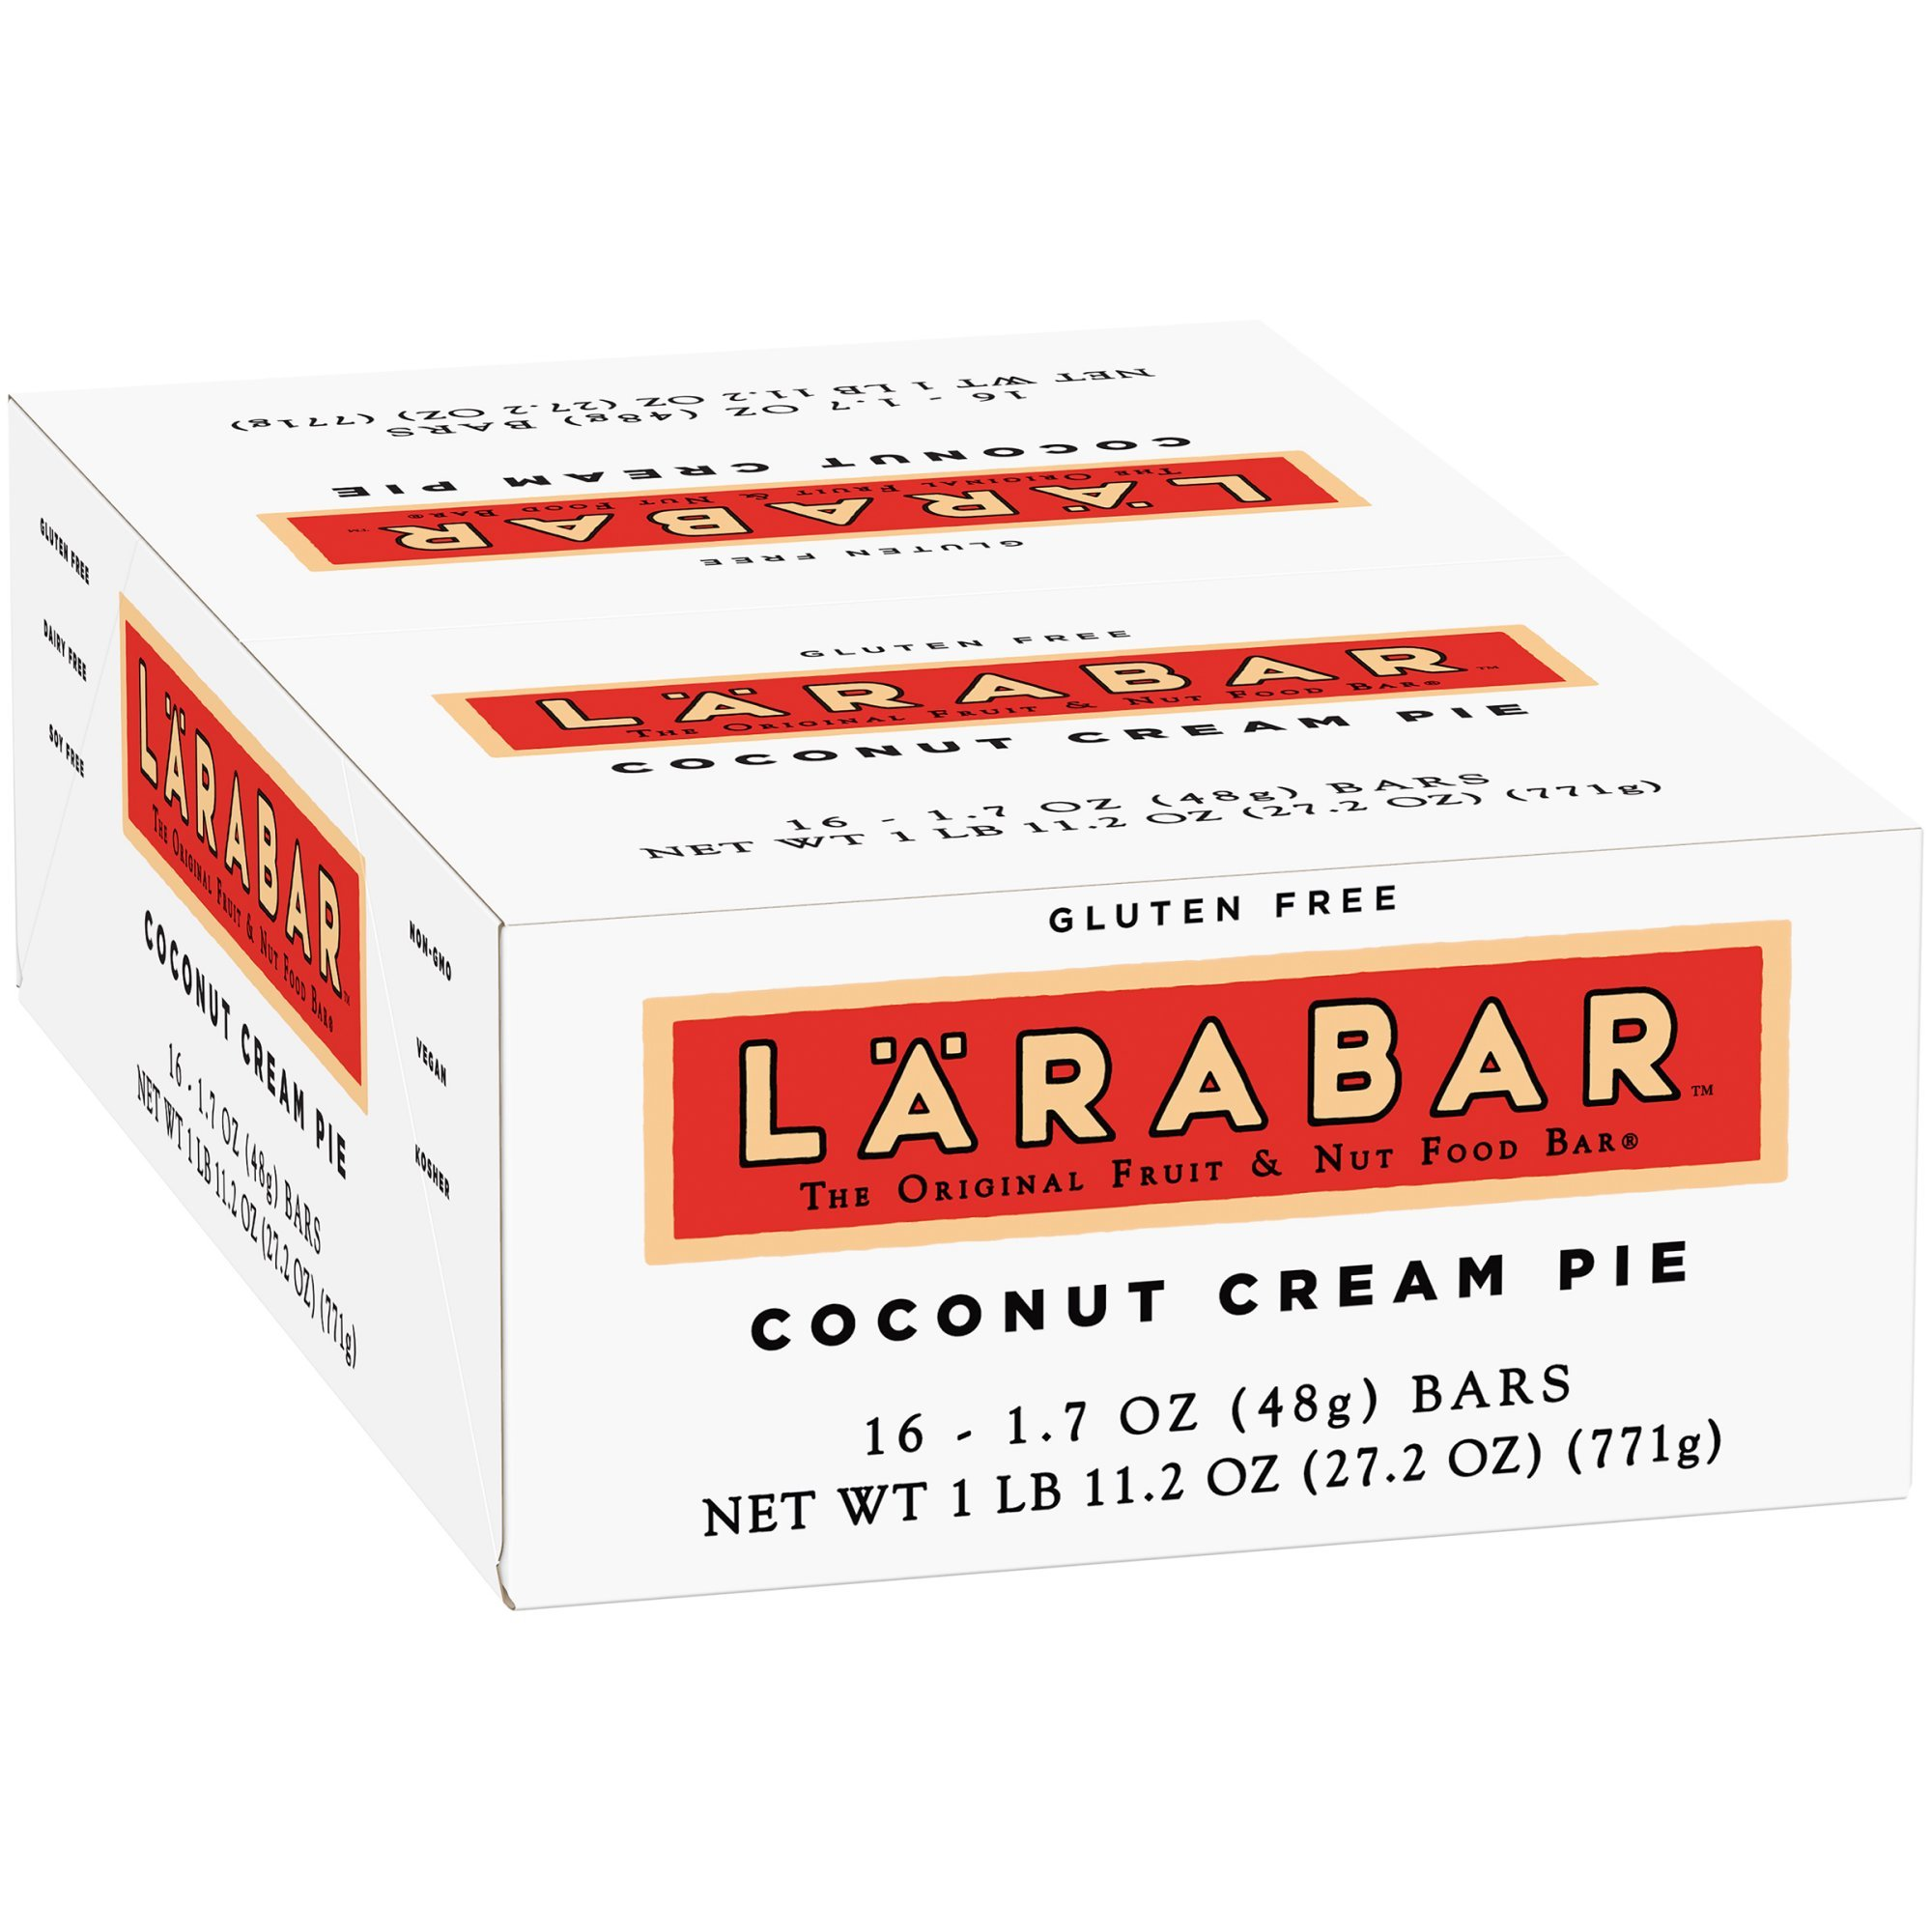 Lärabar Coconut Cream Pie Fruit & Nut Bars 16 ct Box (Pack of 5)